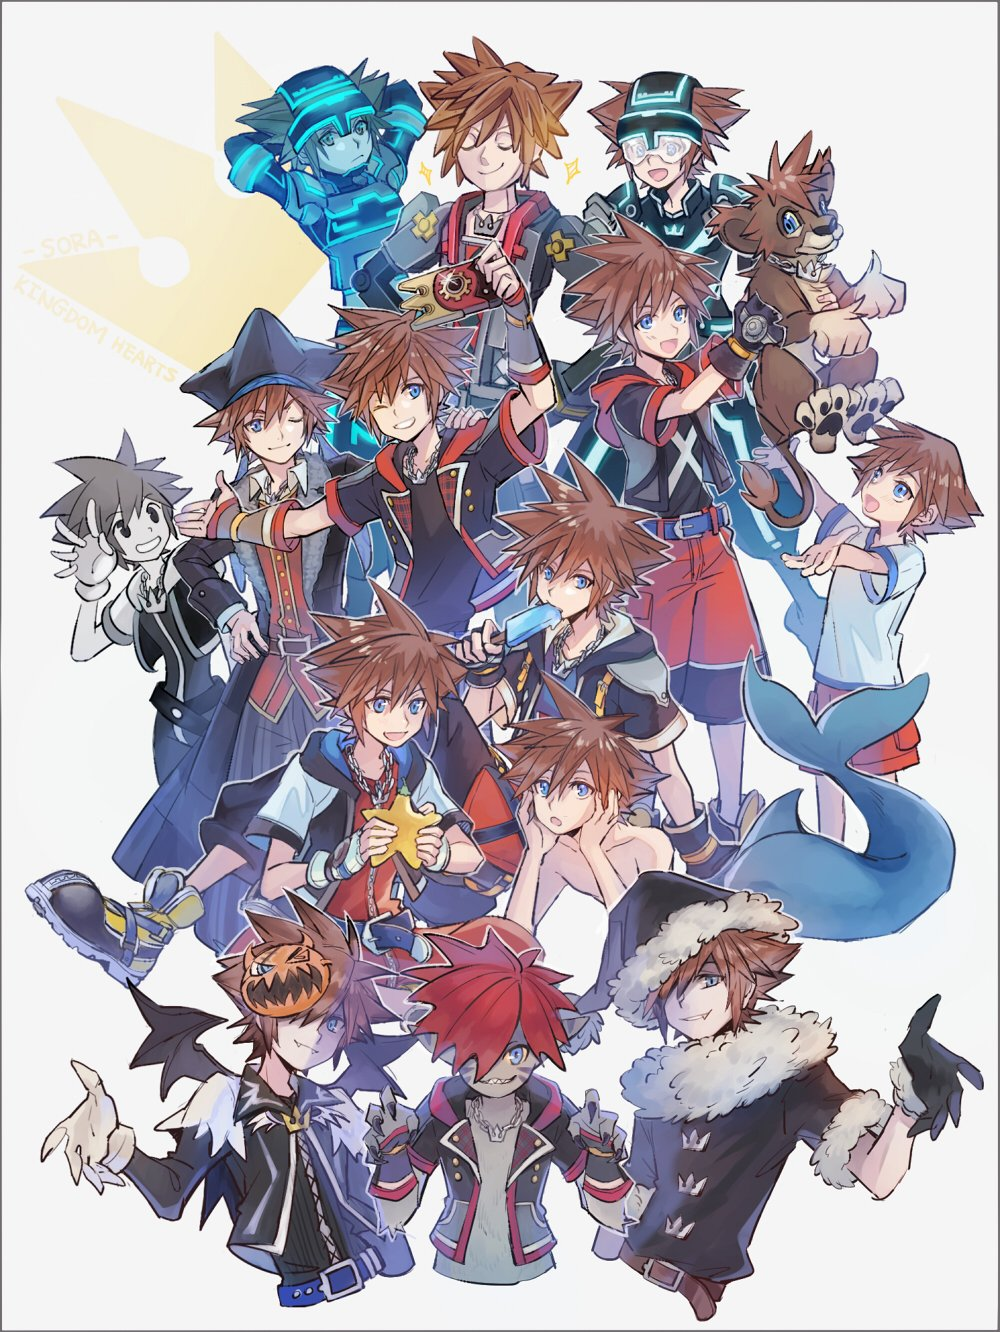 age_progression alternate_form belt black_gloves blue_eyes brown_hair claws fangs fingerless_gloves fingernails gloves hair_over_one_eye hat helmet highres hood hood_down jacket jewelry kingdom_hearts kingdom_hearts_3d_dream_drop_distance kingdom_hearts_i kingdom_hearts_ii kingdom_hearts_iii lion mask mask_on_head mask_over_one_eye merman monochrome monster_boy multiple_persona necklace open_mouth paopu_fruit pirate_hat redhead santa_costume santa_hat sharp_fingernails sharp_teeth shorts smile sora_(kingdom_hearts) sparkle spiky_hair symbol_commentary teeth white_gloves younger yurichi_(artist)